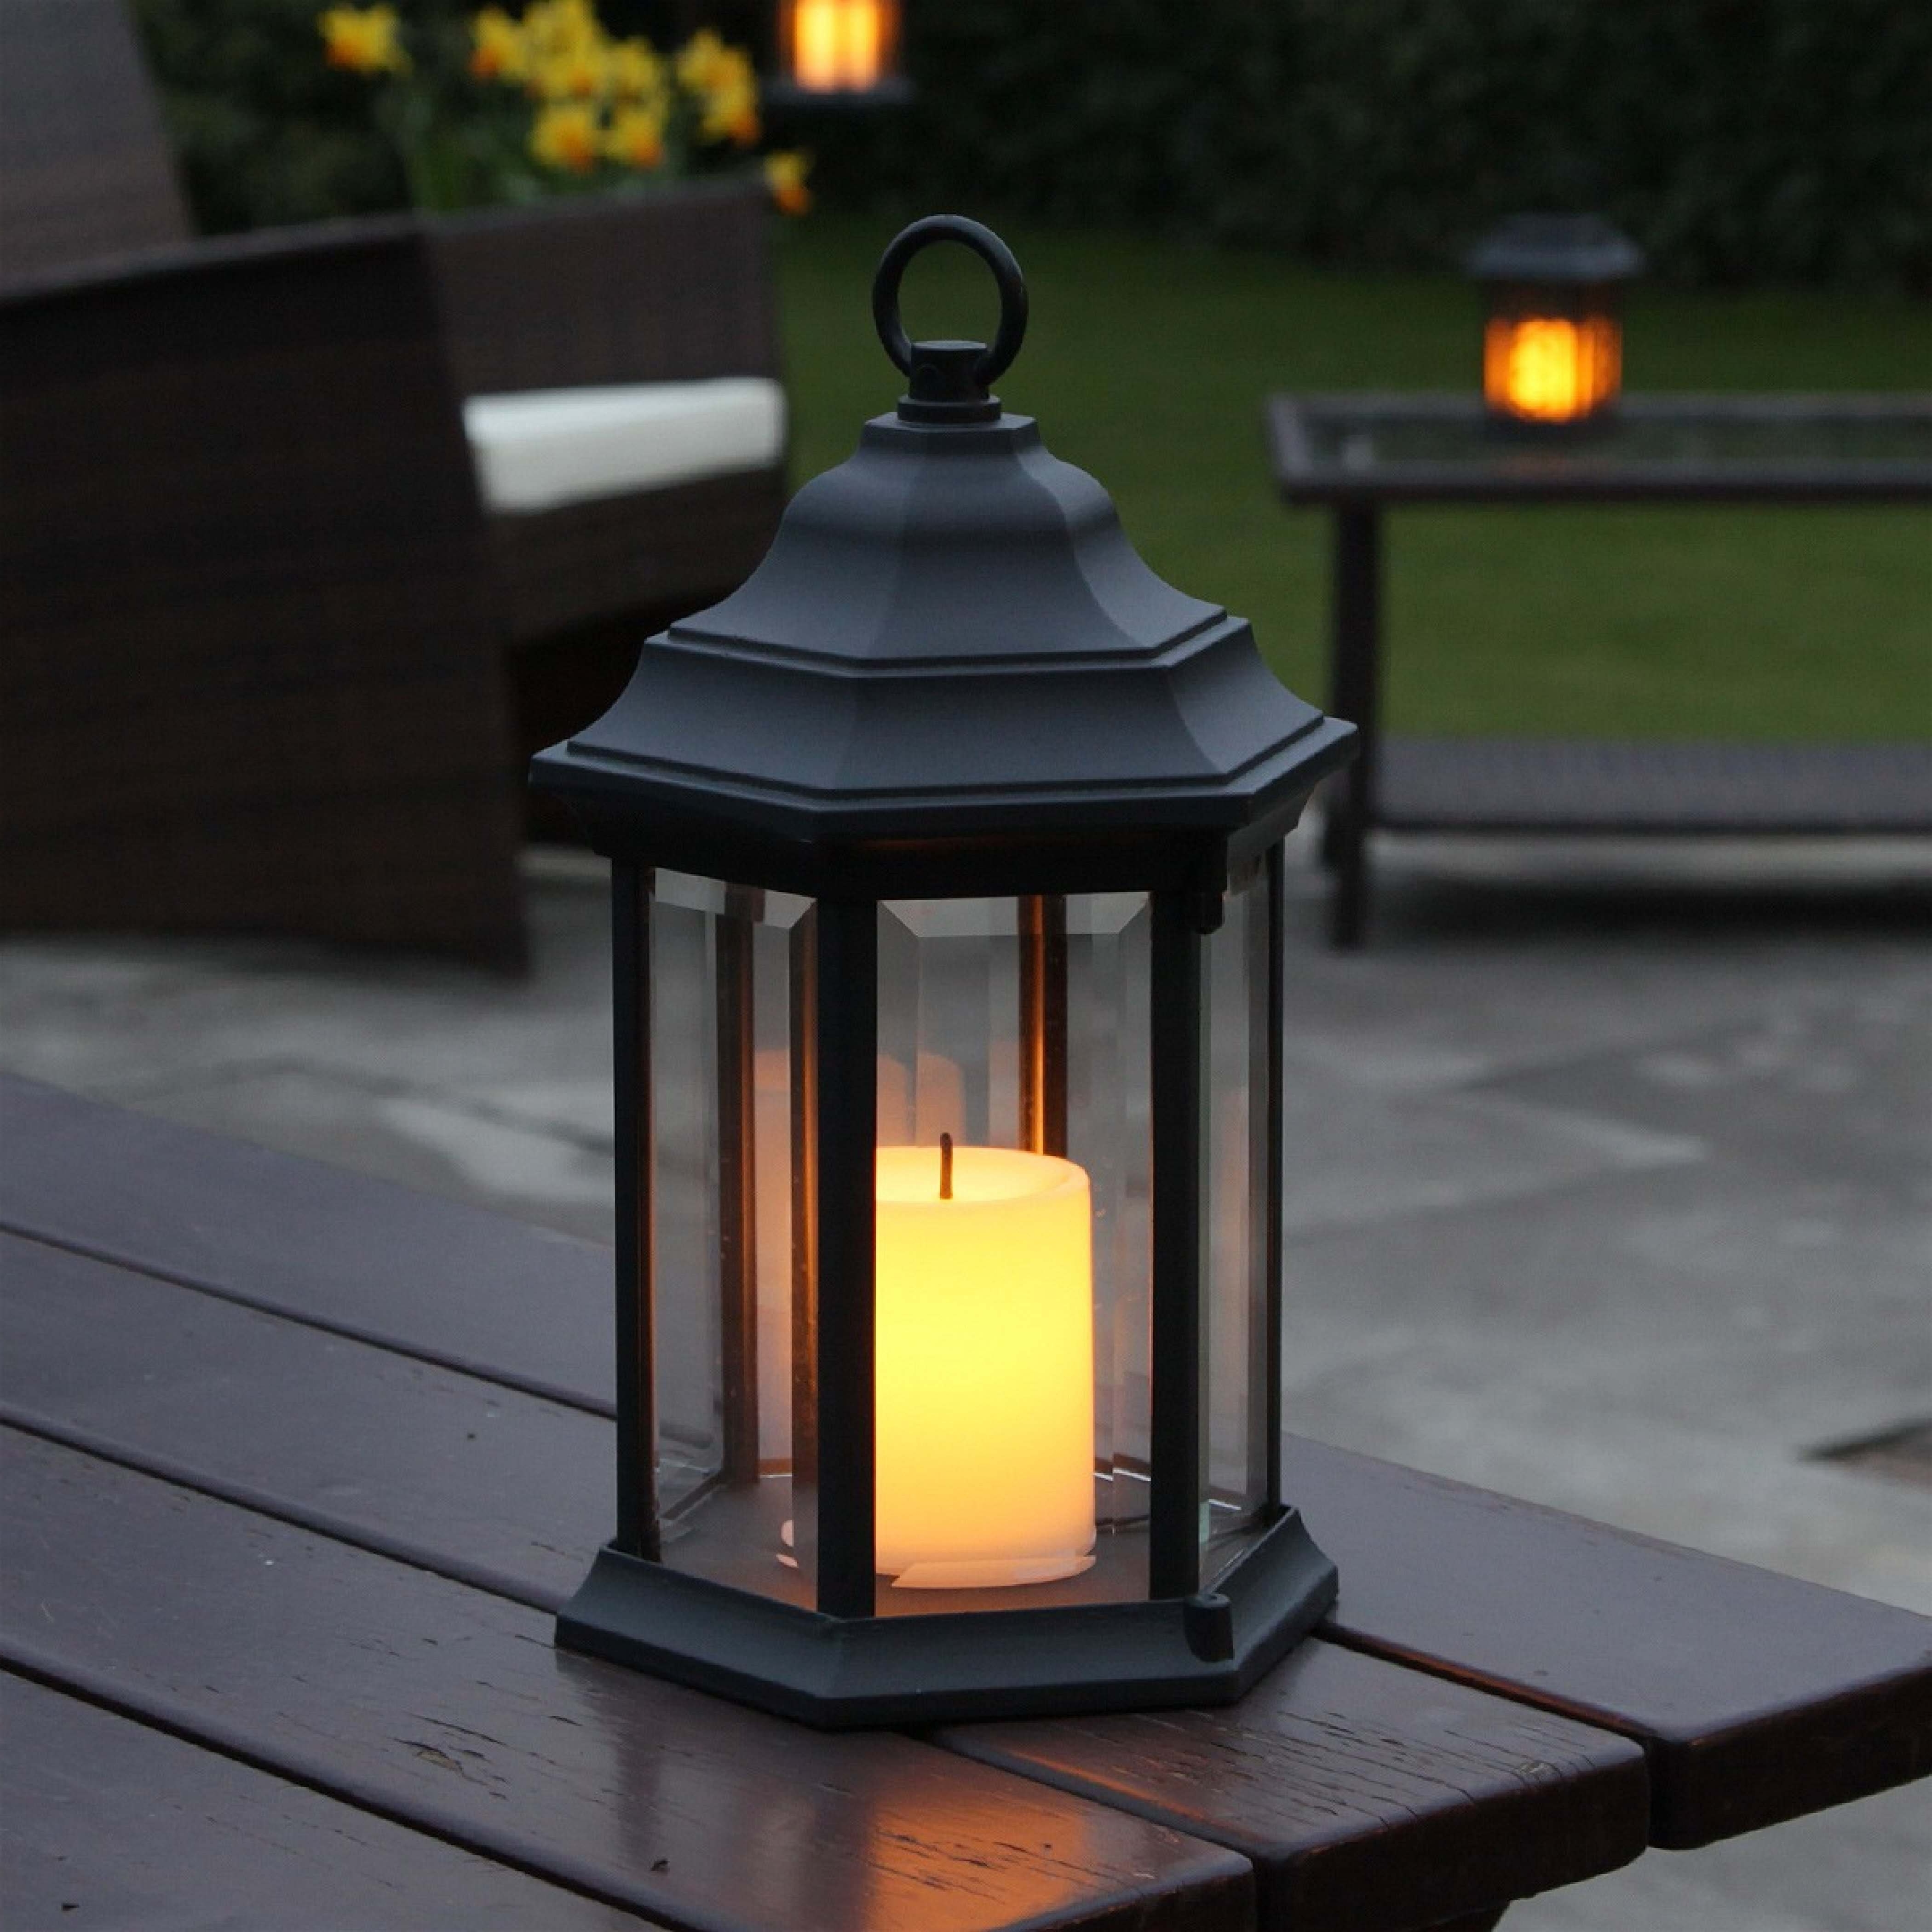 Outdoor Lanterns With Timers (Gallery 10 of 20)